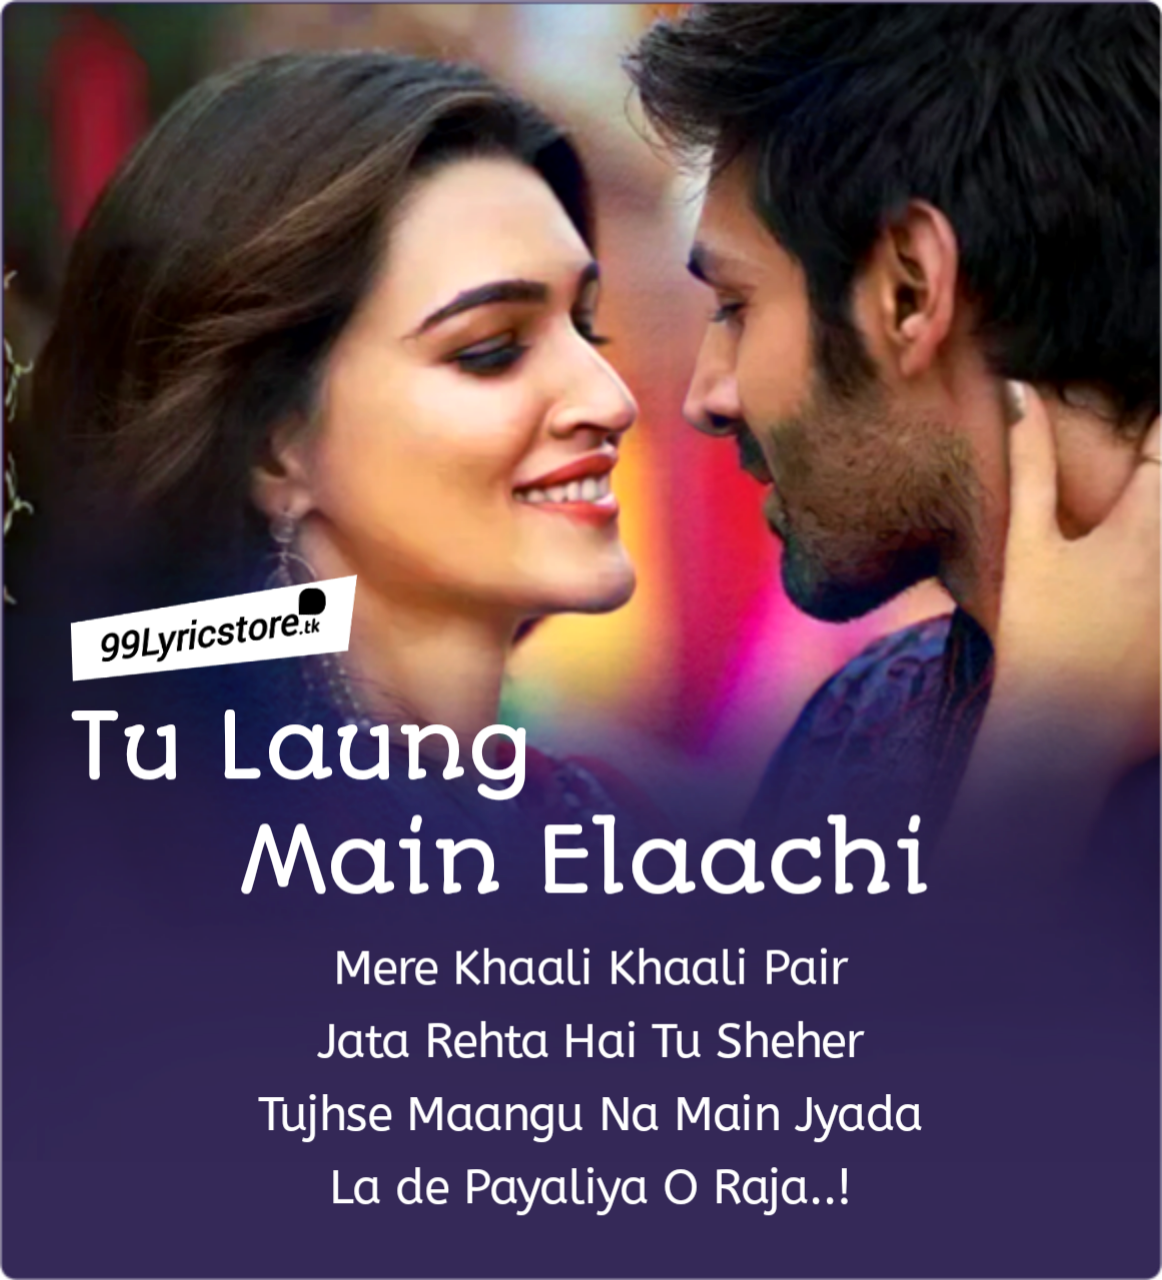 Latest Song 'Tu Laung Main Elaachi' From Upcoming Bollywood Movie 'Luka Chuppi'. Song beautifully sung by 'Tulsi Kumar'. Music composed by 'Tanishq Baghchi' and Lyrics written by . Song Music Label is T-Series. Song Features Kartik Aaryan and Kriti Sanon